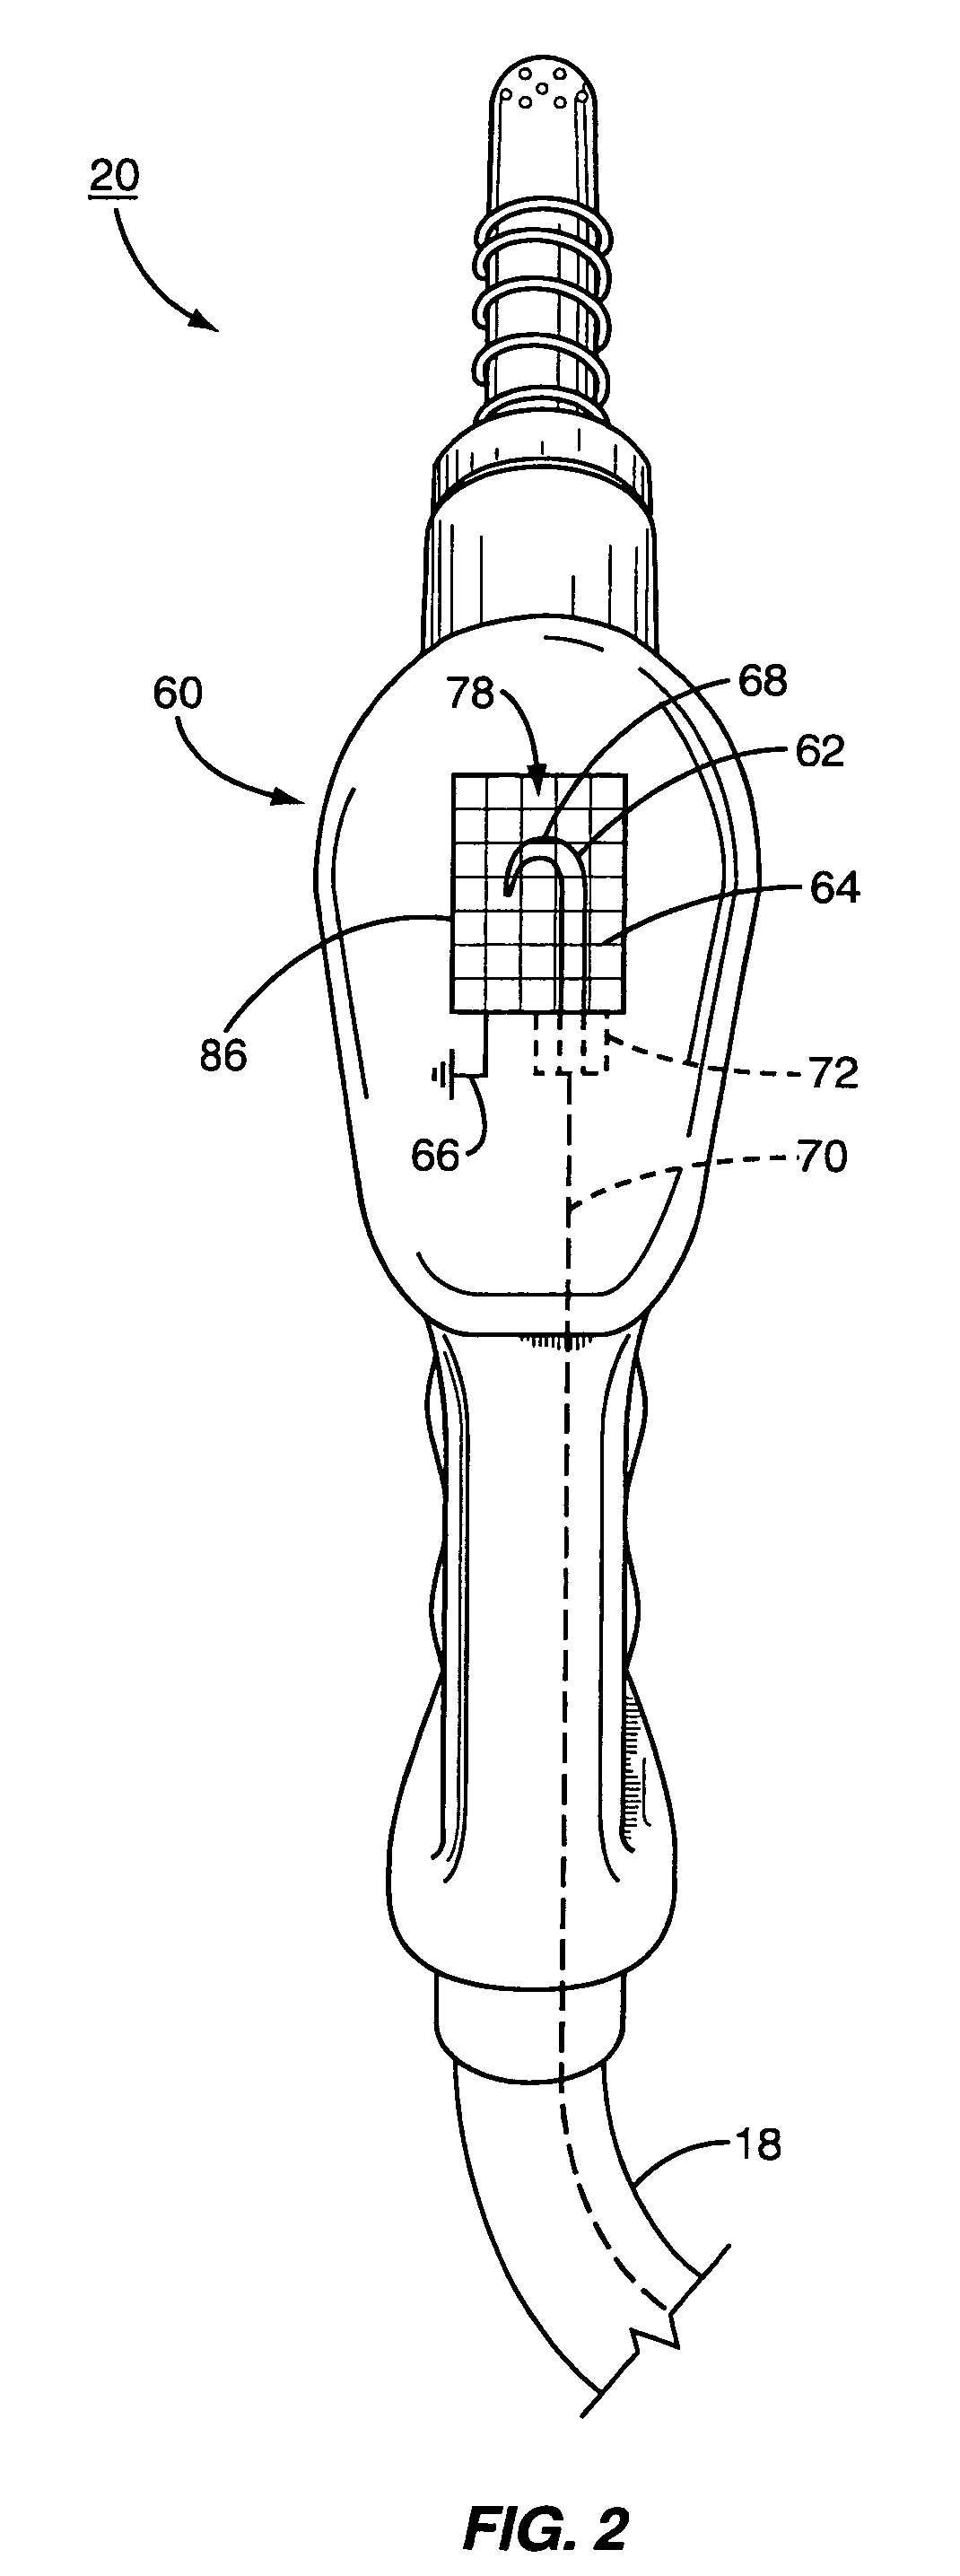 patent us7408758 - static electricity detection for fuel dispenser